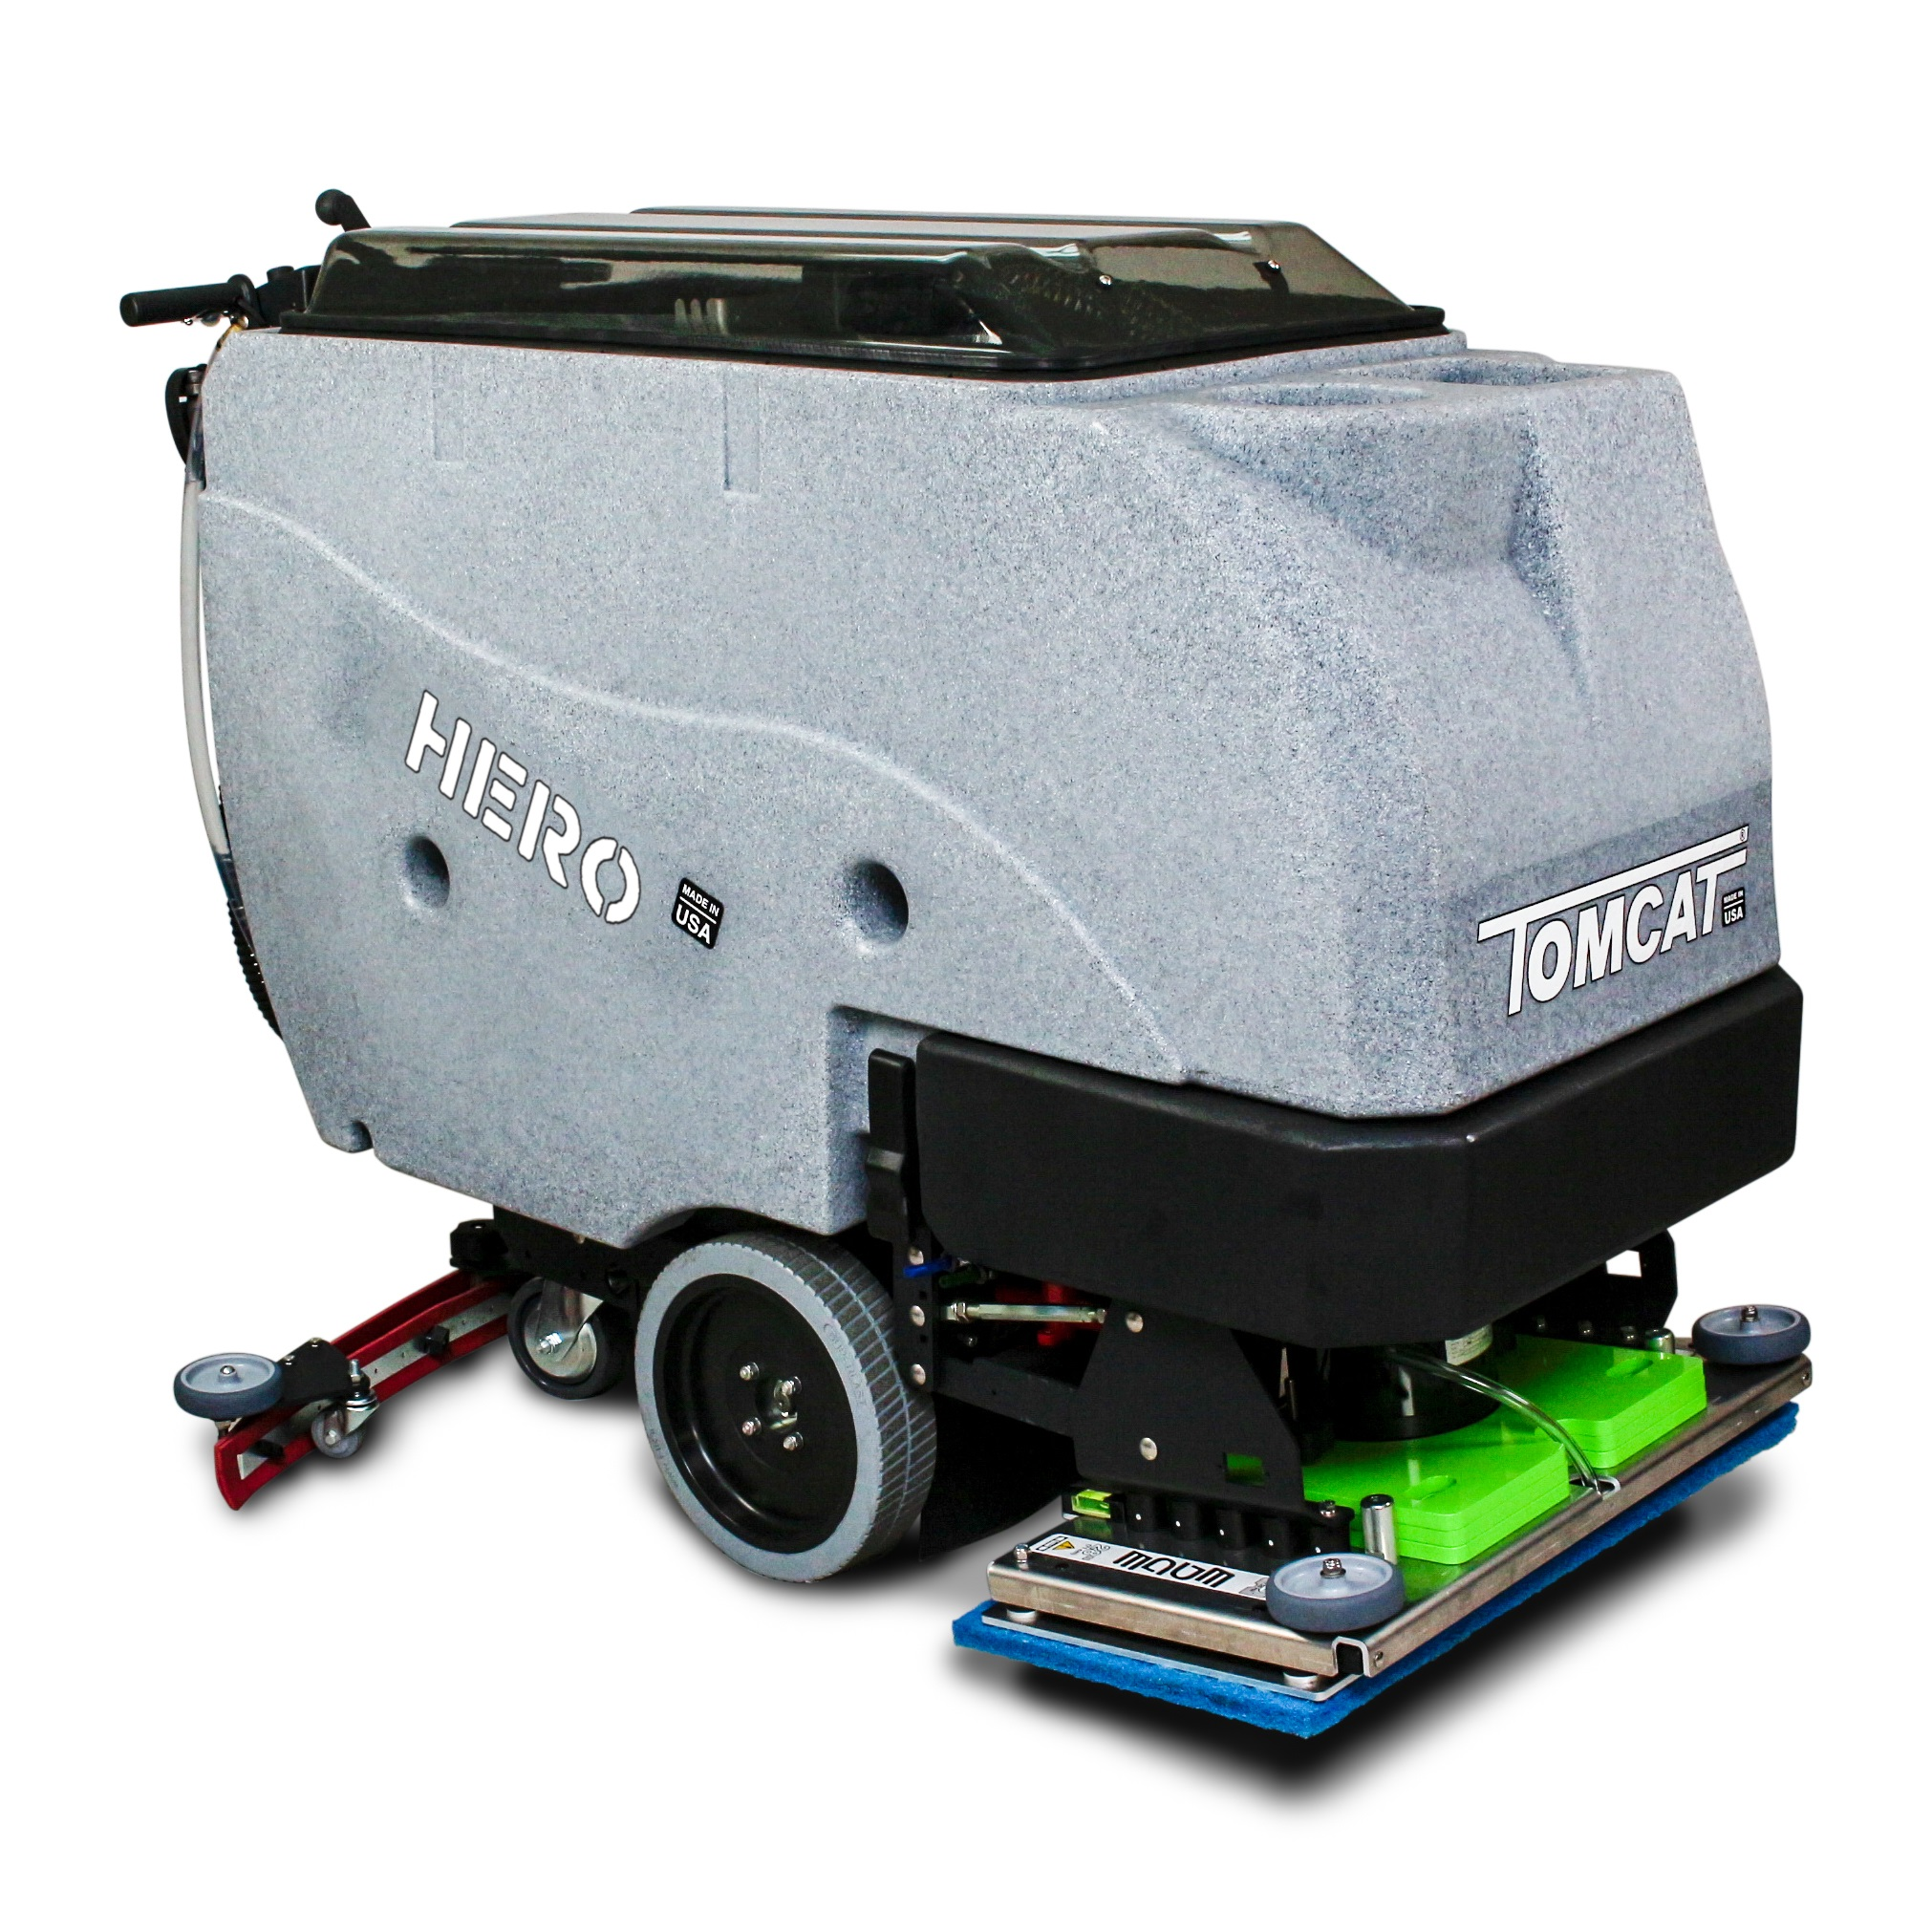 Large powerful pedestrian scrubber with EDGE scrub deck technology